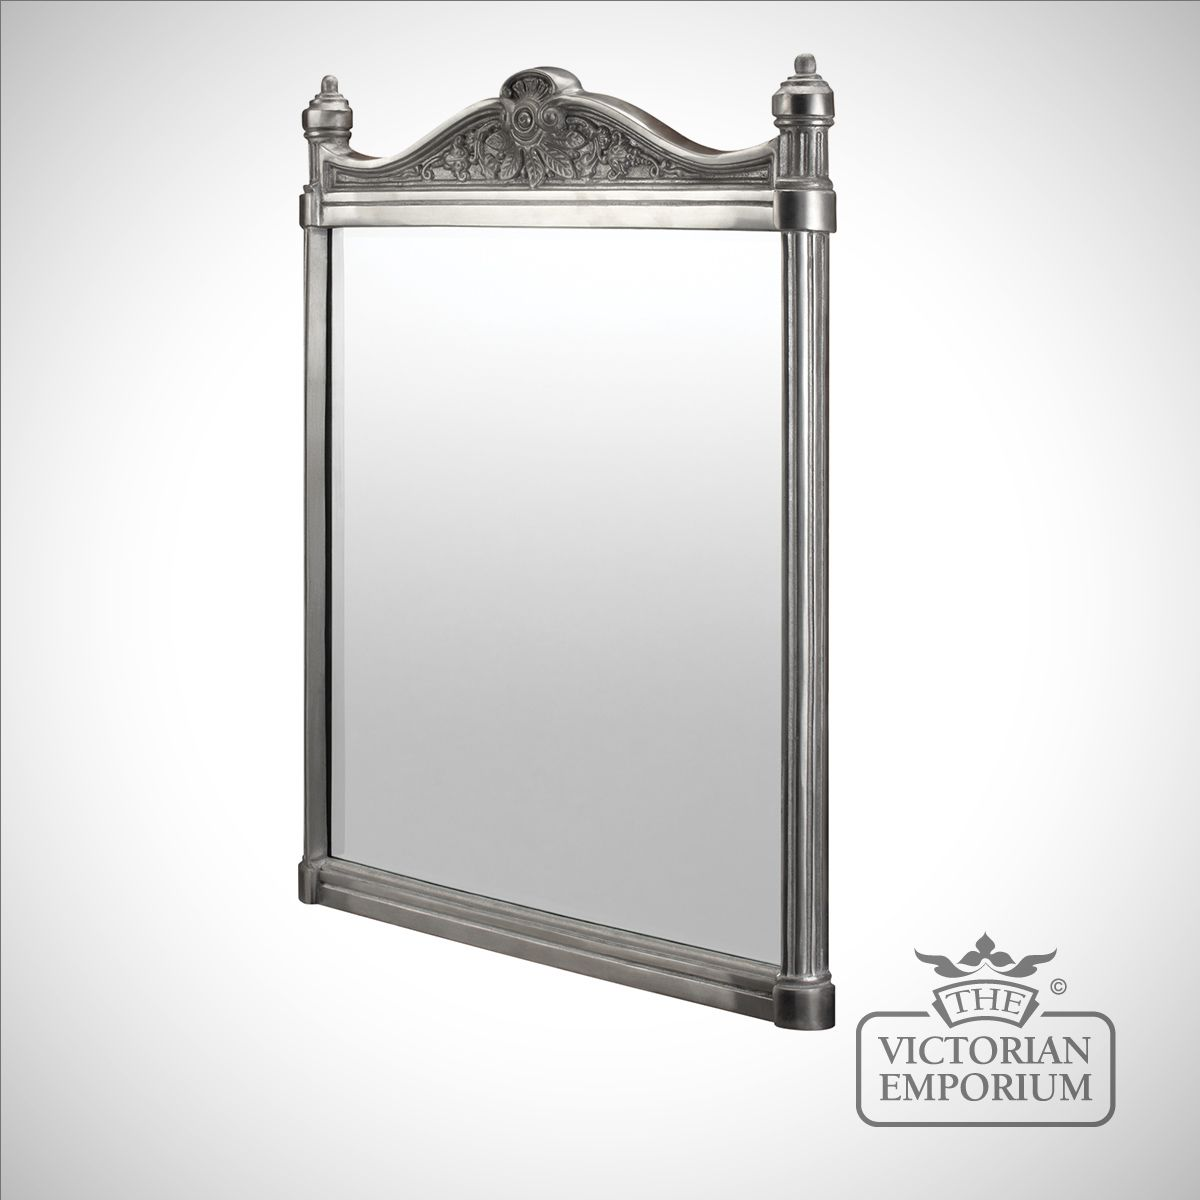 Ornate Bathroom Mirrors: Ornate Bathroom Mirror In Choice Of Finishes